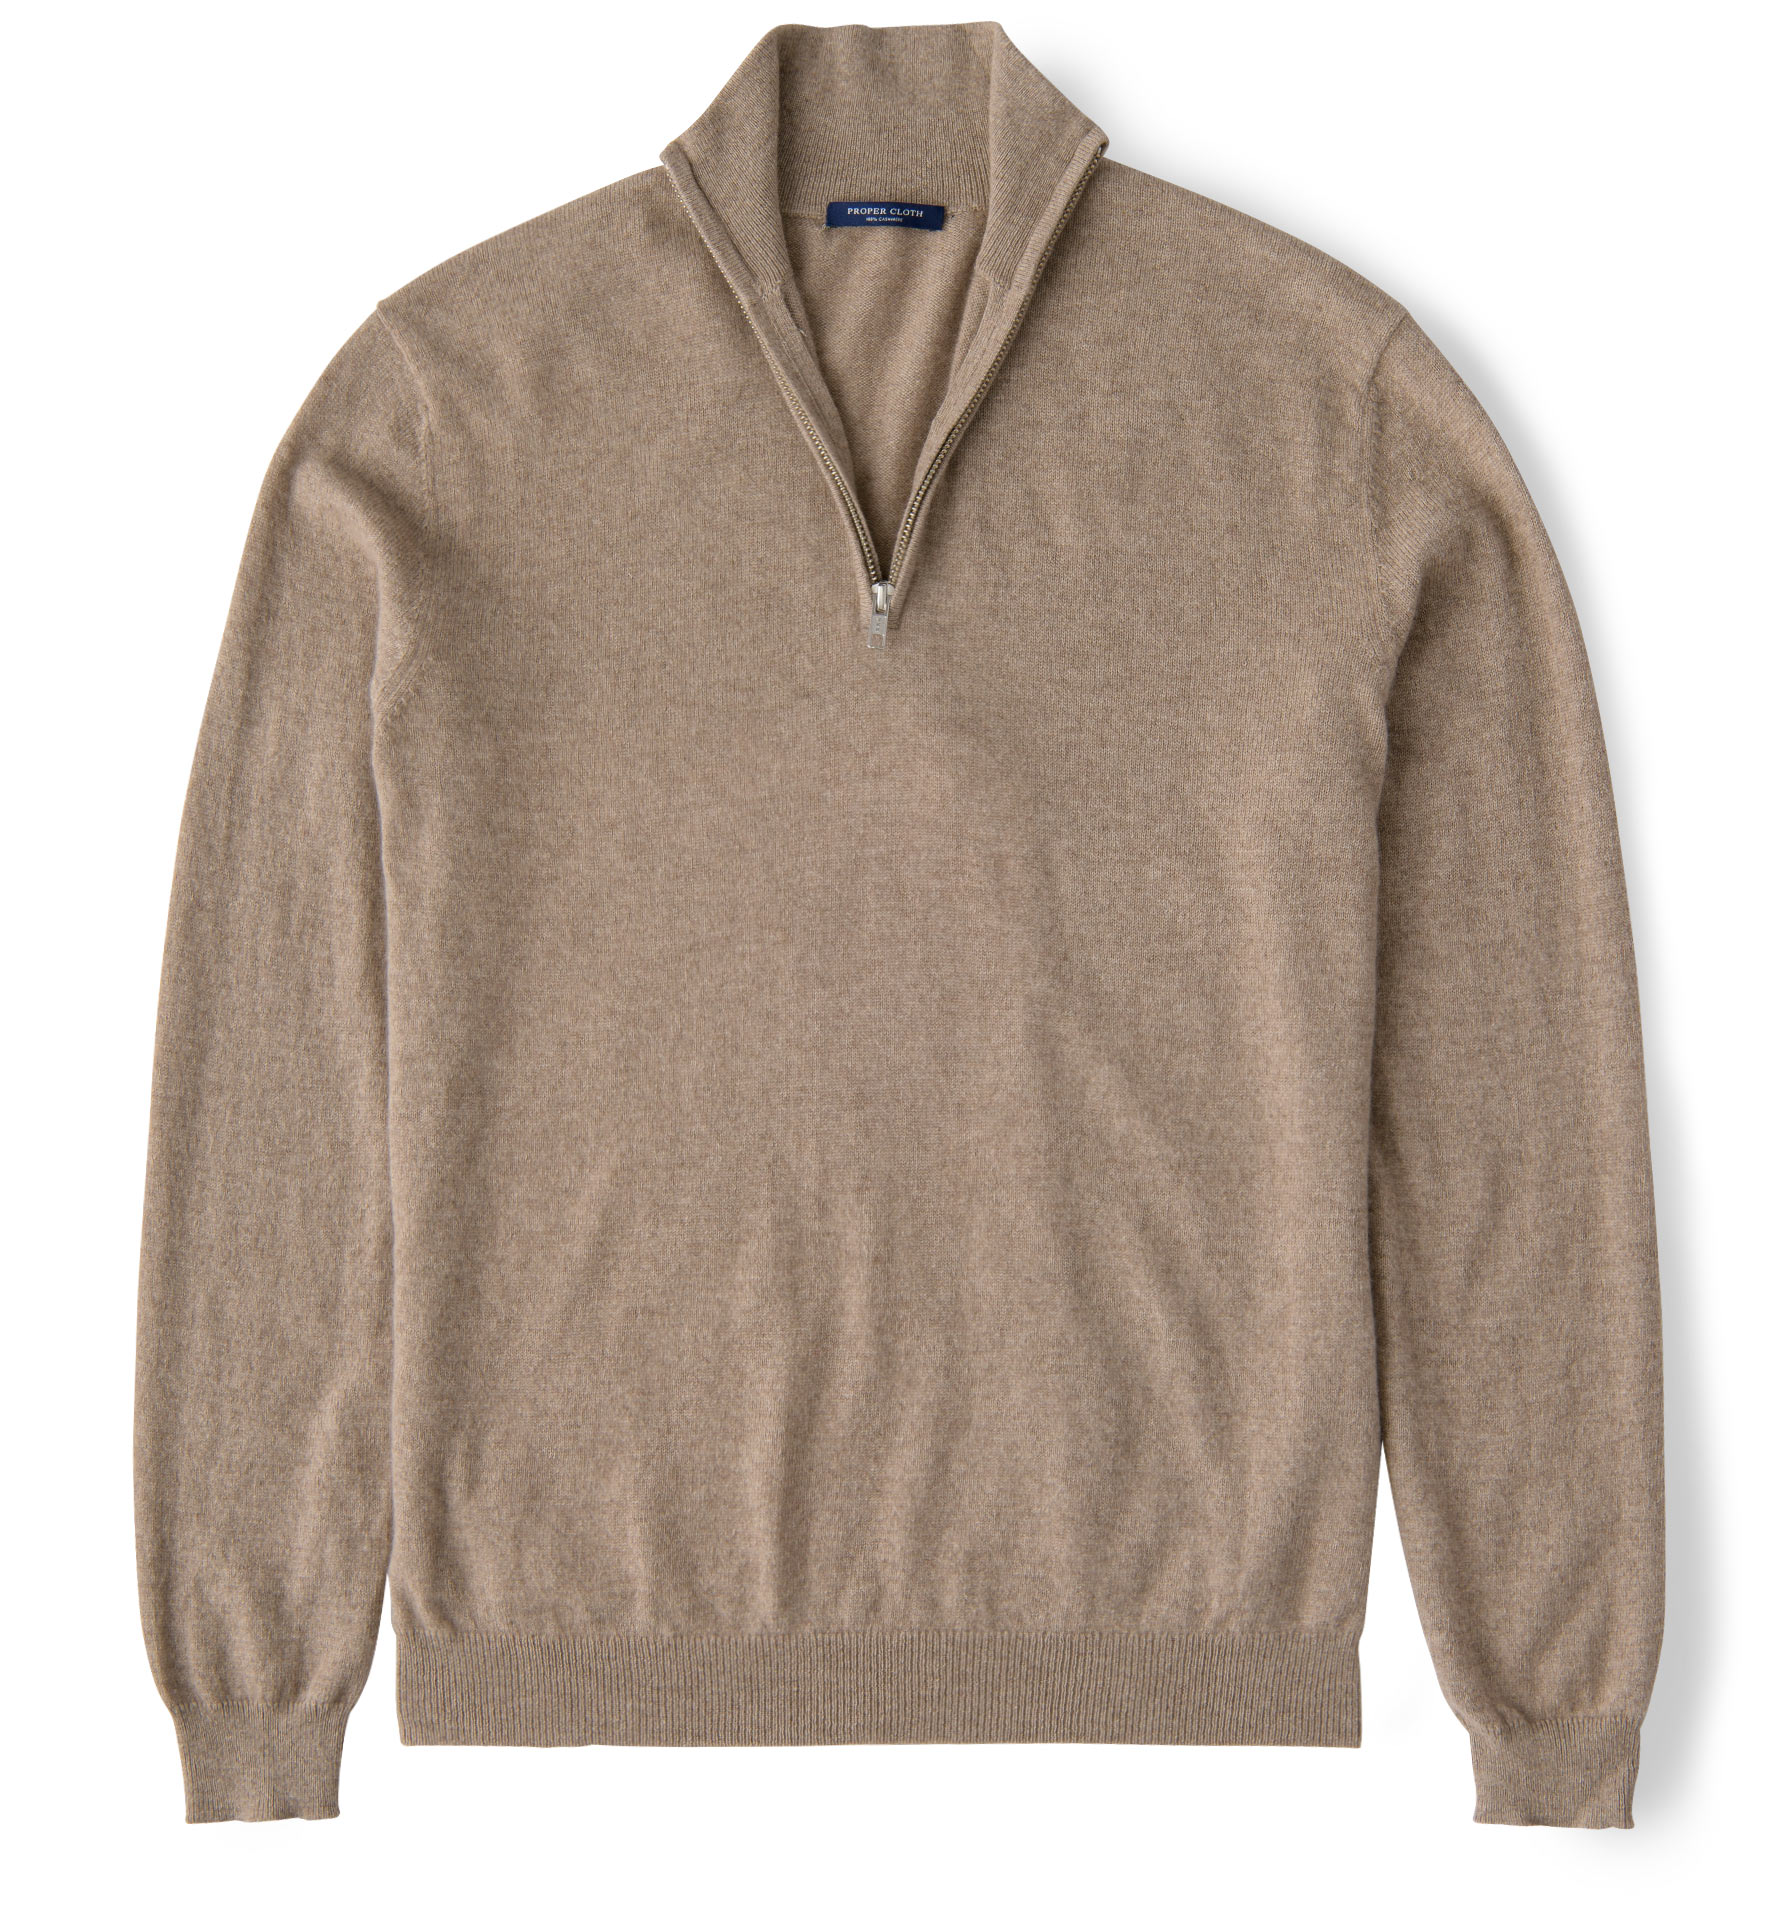 Zoom Image of Natural Taupe Cashmere Half Zip